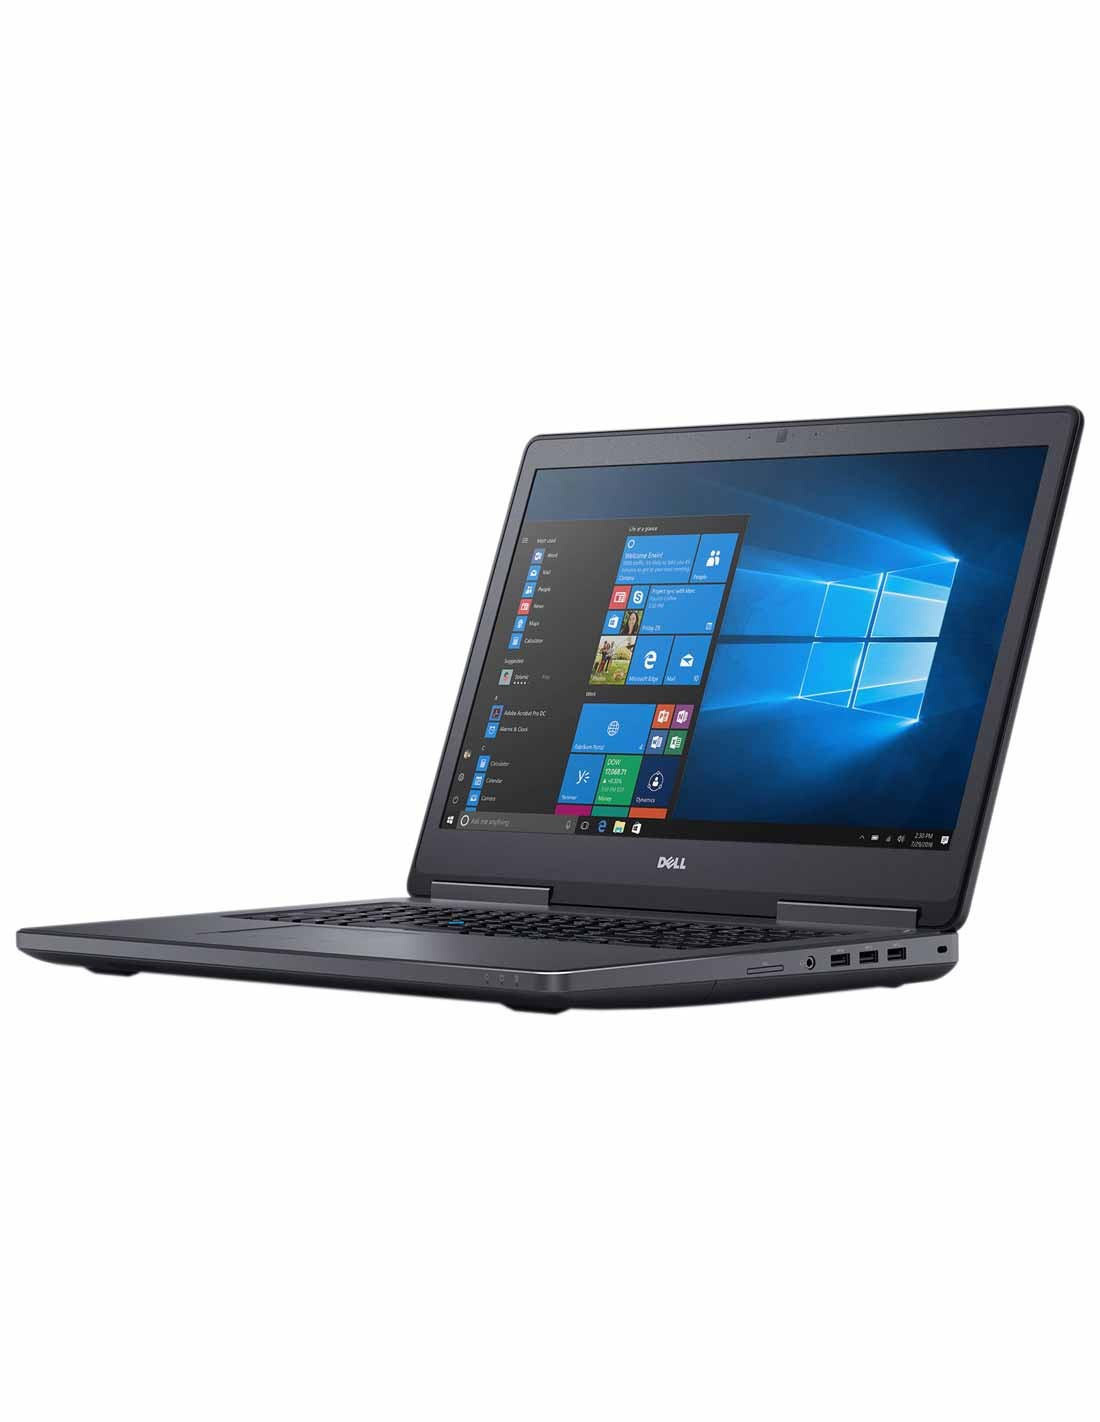 Buy Online Dell Precision M7720 at the cheapest prices in Dubai online store